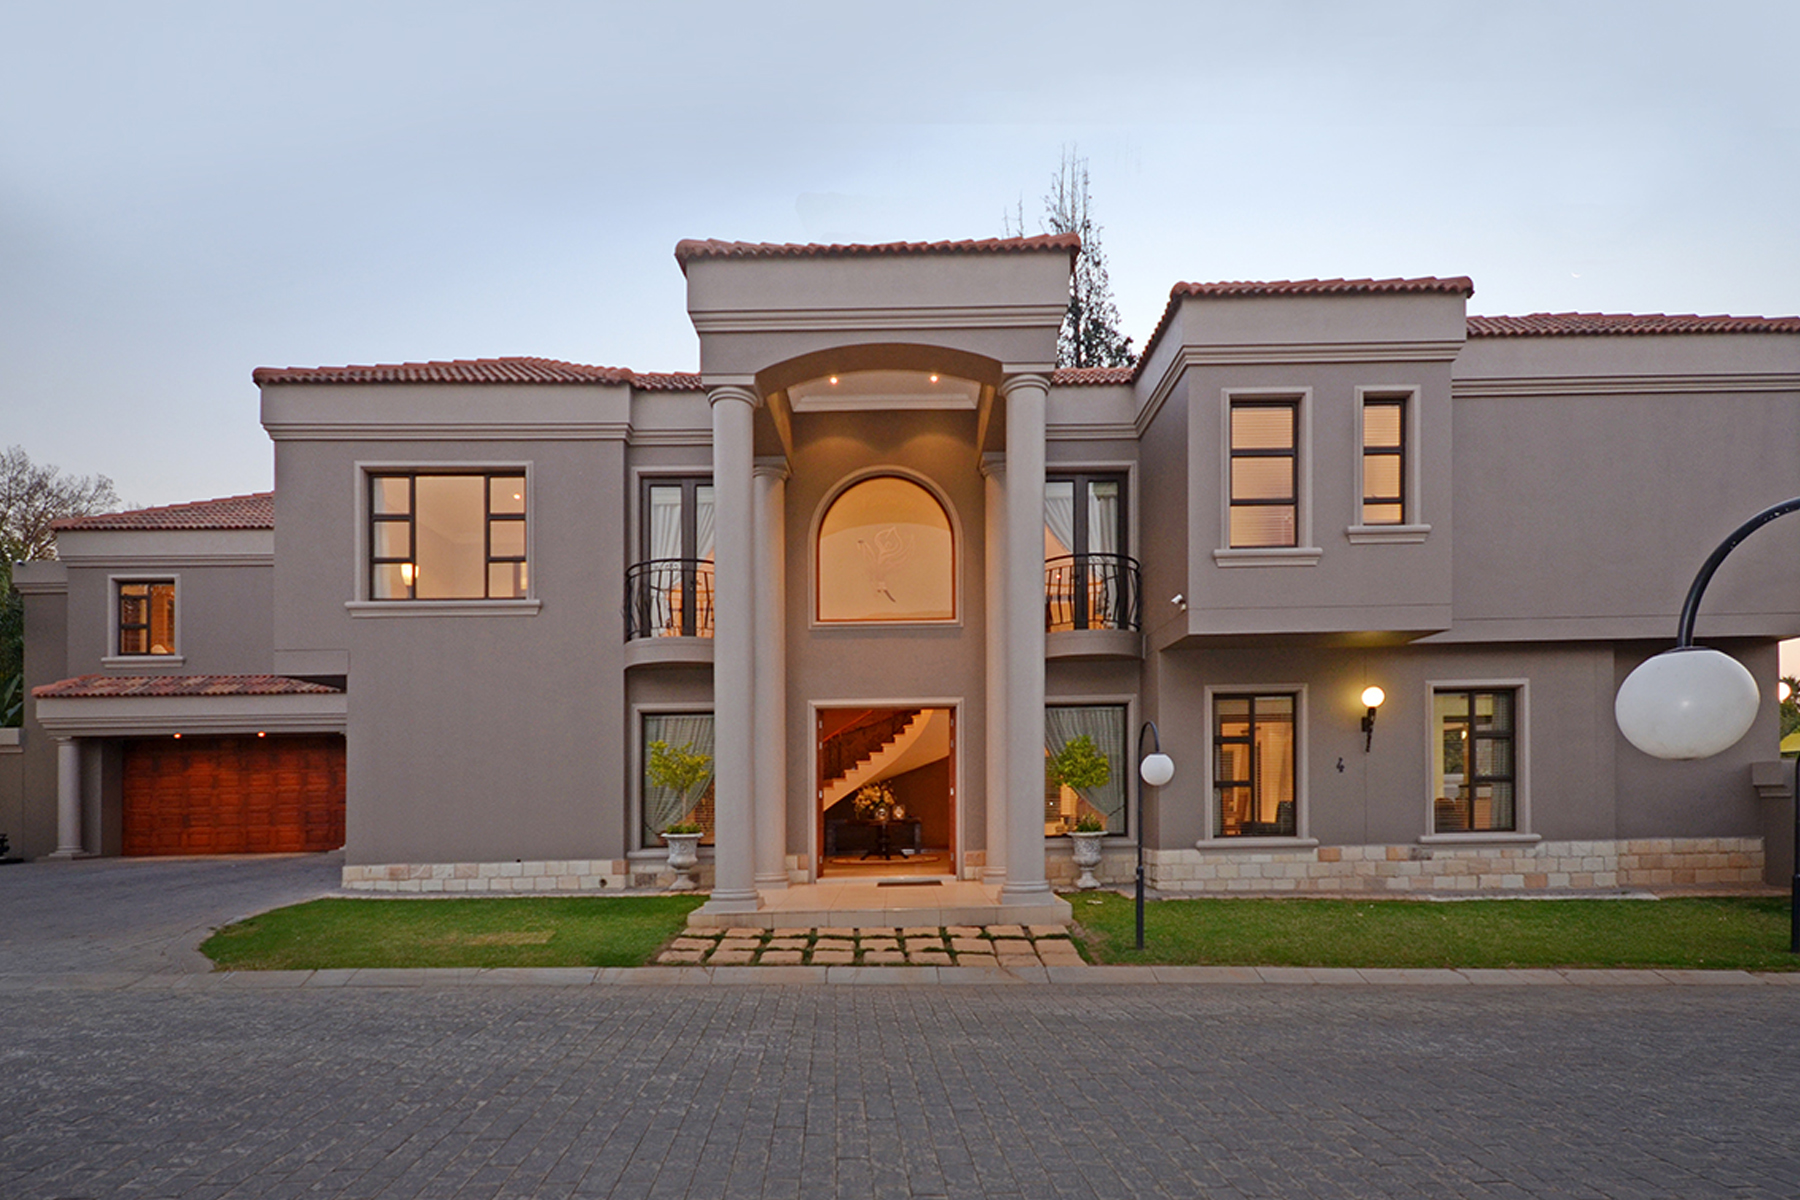 Single Family Home for Sale at Villa D'ORO, Oriel Johannesburg, Gauteng, 2007 South Africa